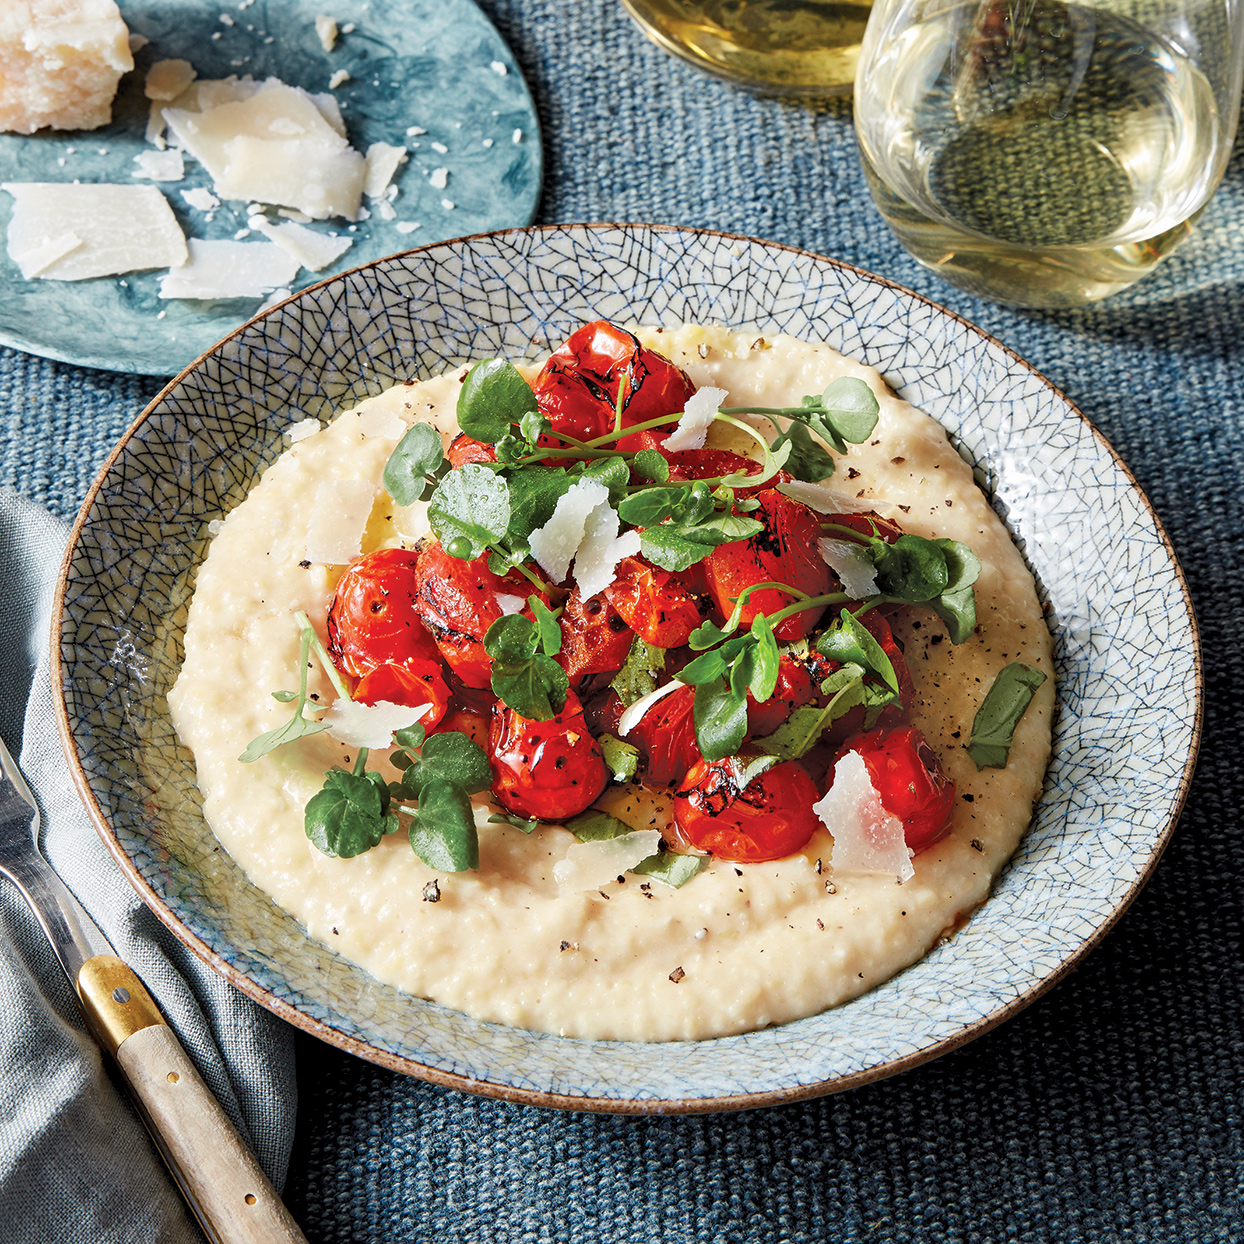 Slow-Cooker Polenta with Roasted Tomatoes & Parmesan